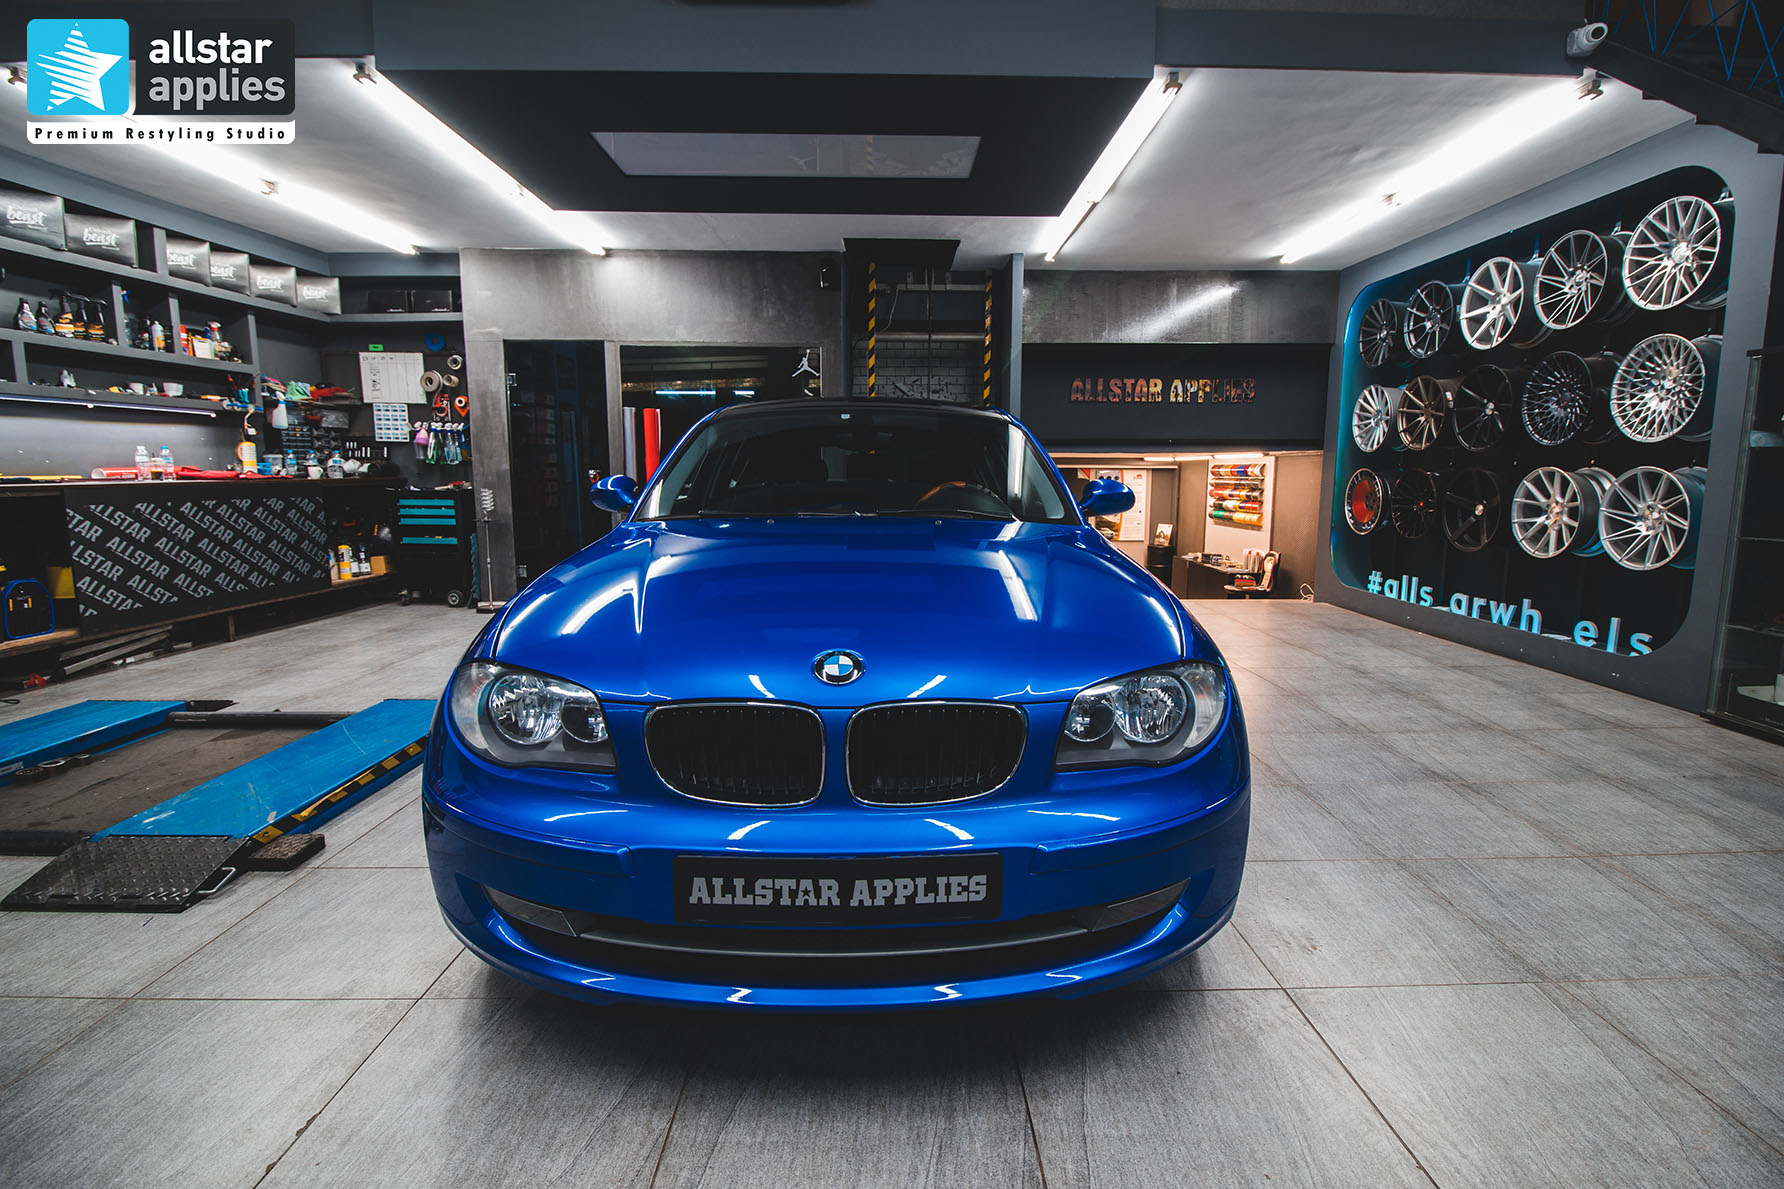 BAHAMA BLUE BMW SERIES 1 ALLSTAR APPLIES (2)